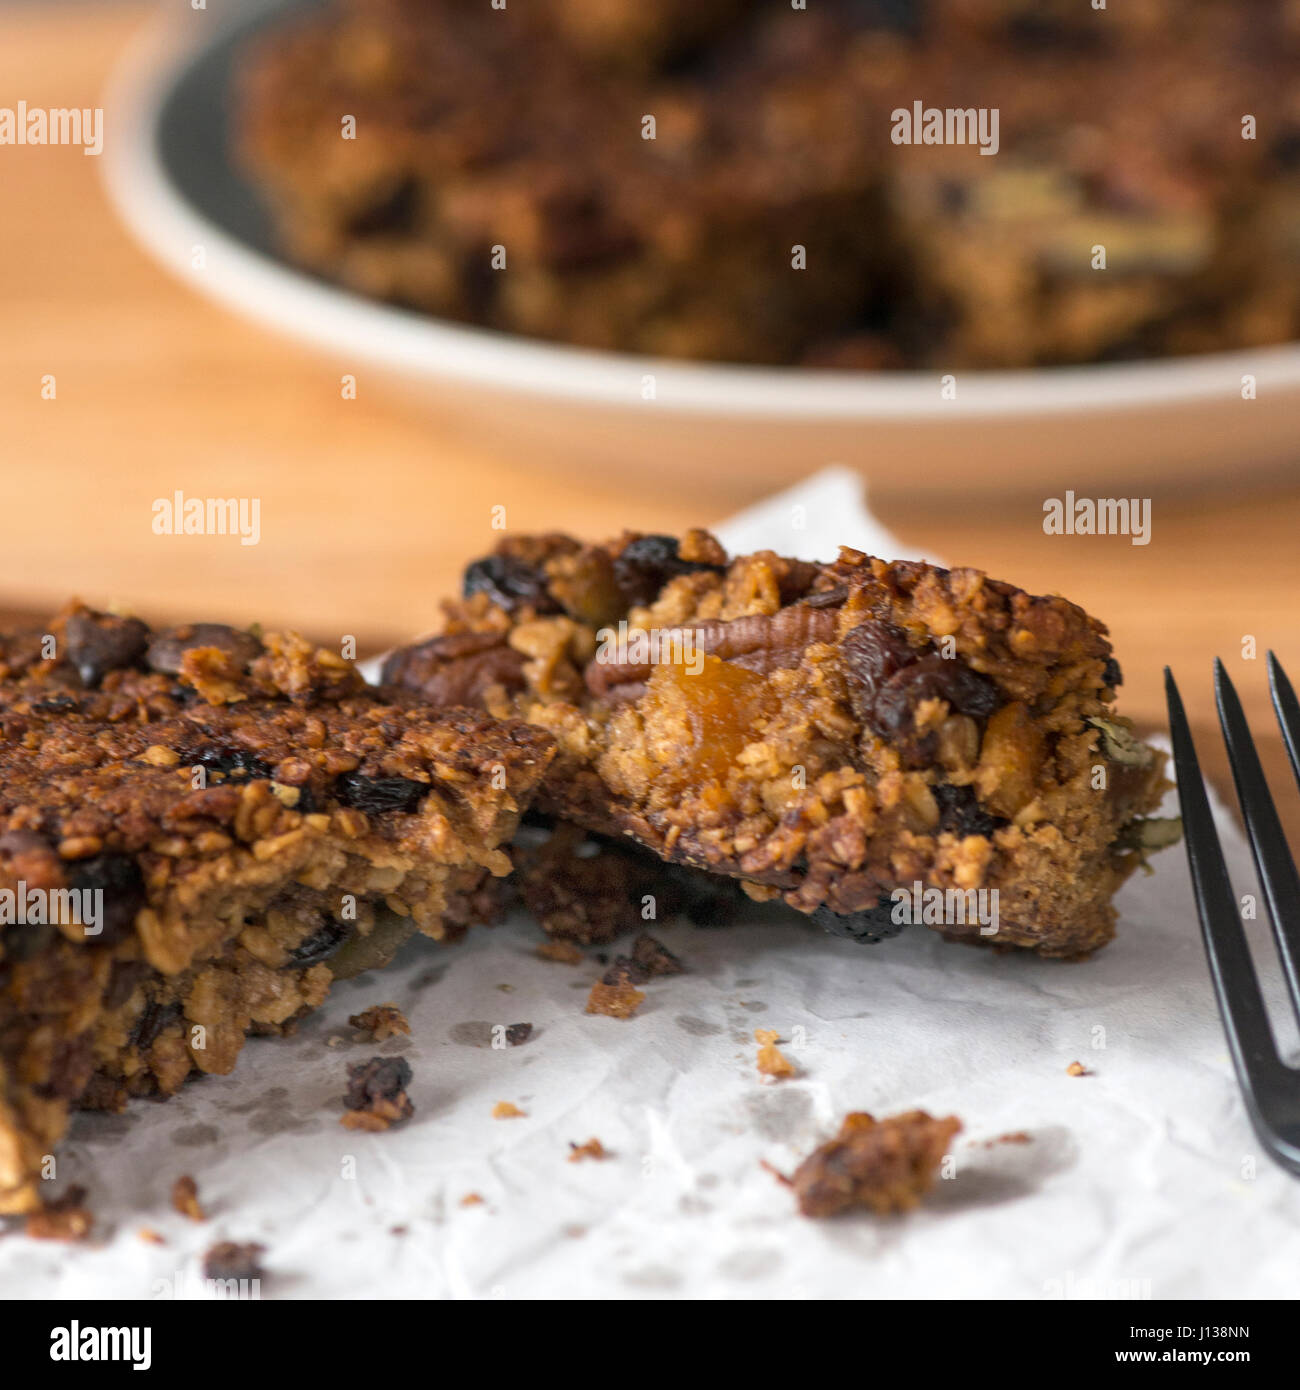 square image of fruit flap jacks made from quinoa plant based snack, - Stock Image